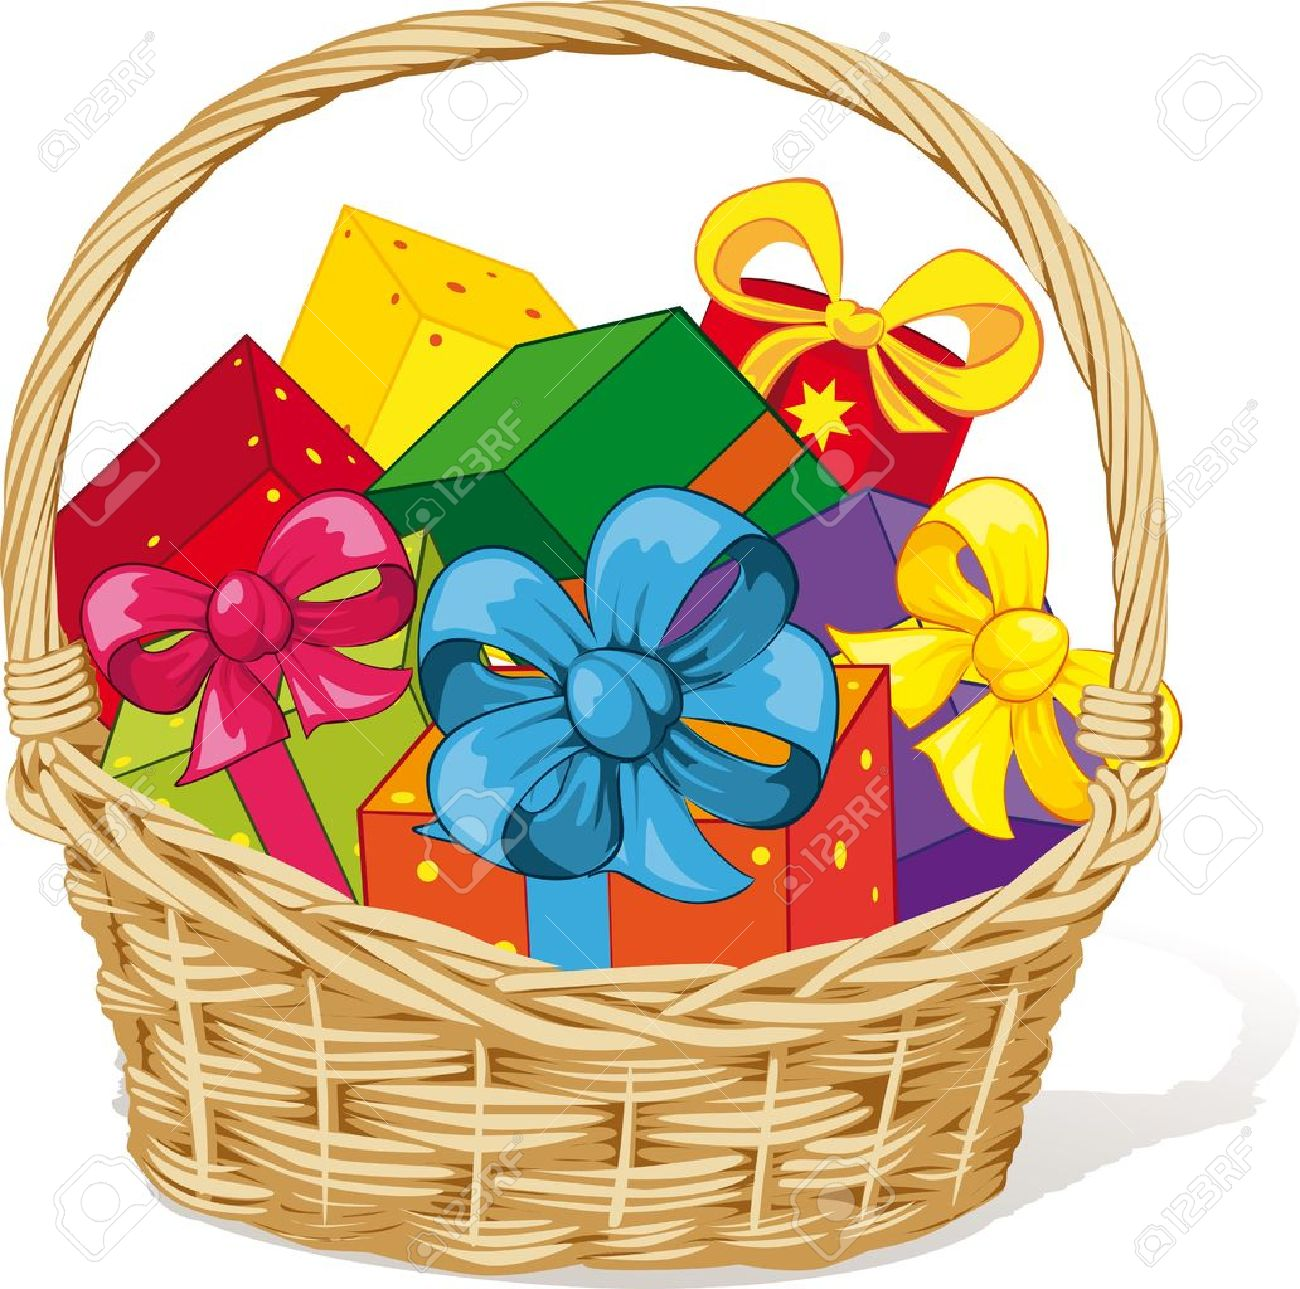 12+ Gift Basket Clipart - Preview : Gift Basket T Bas ...